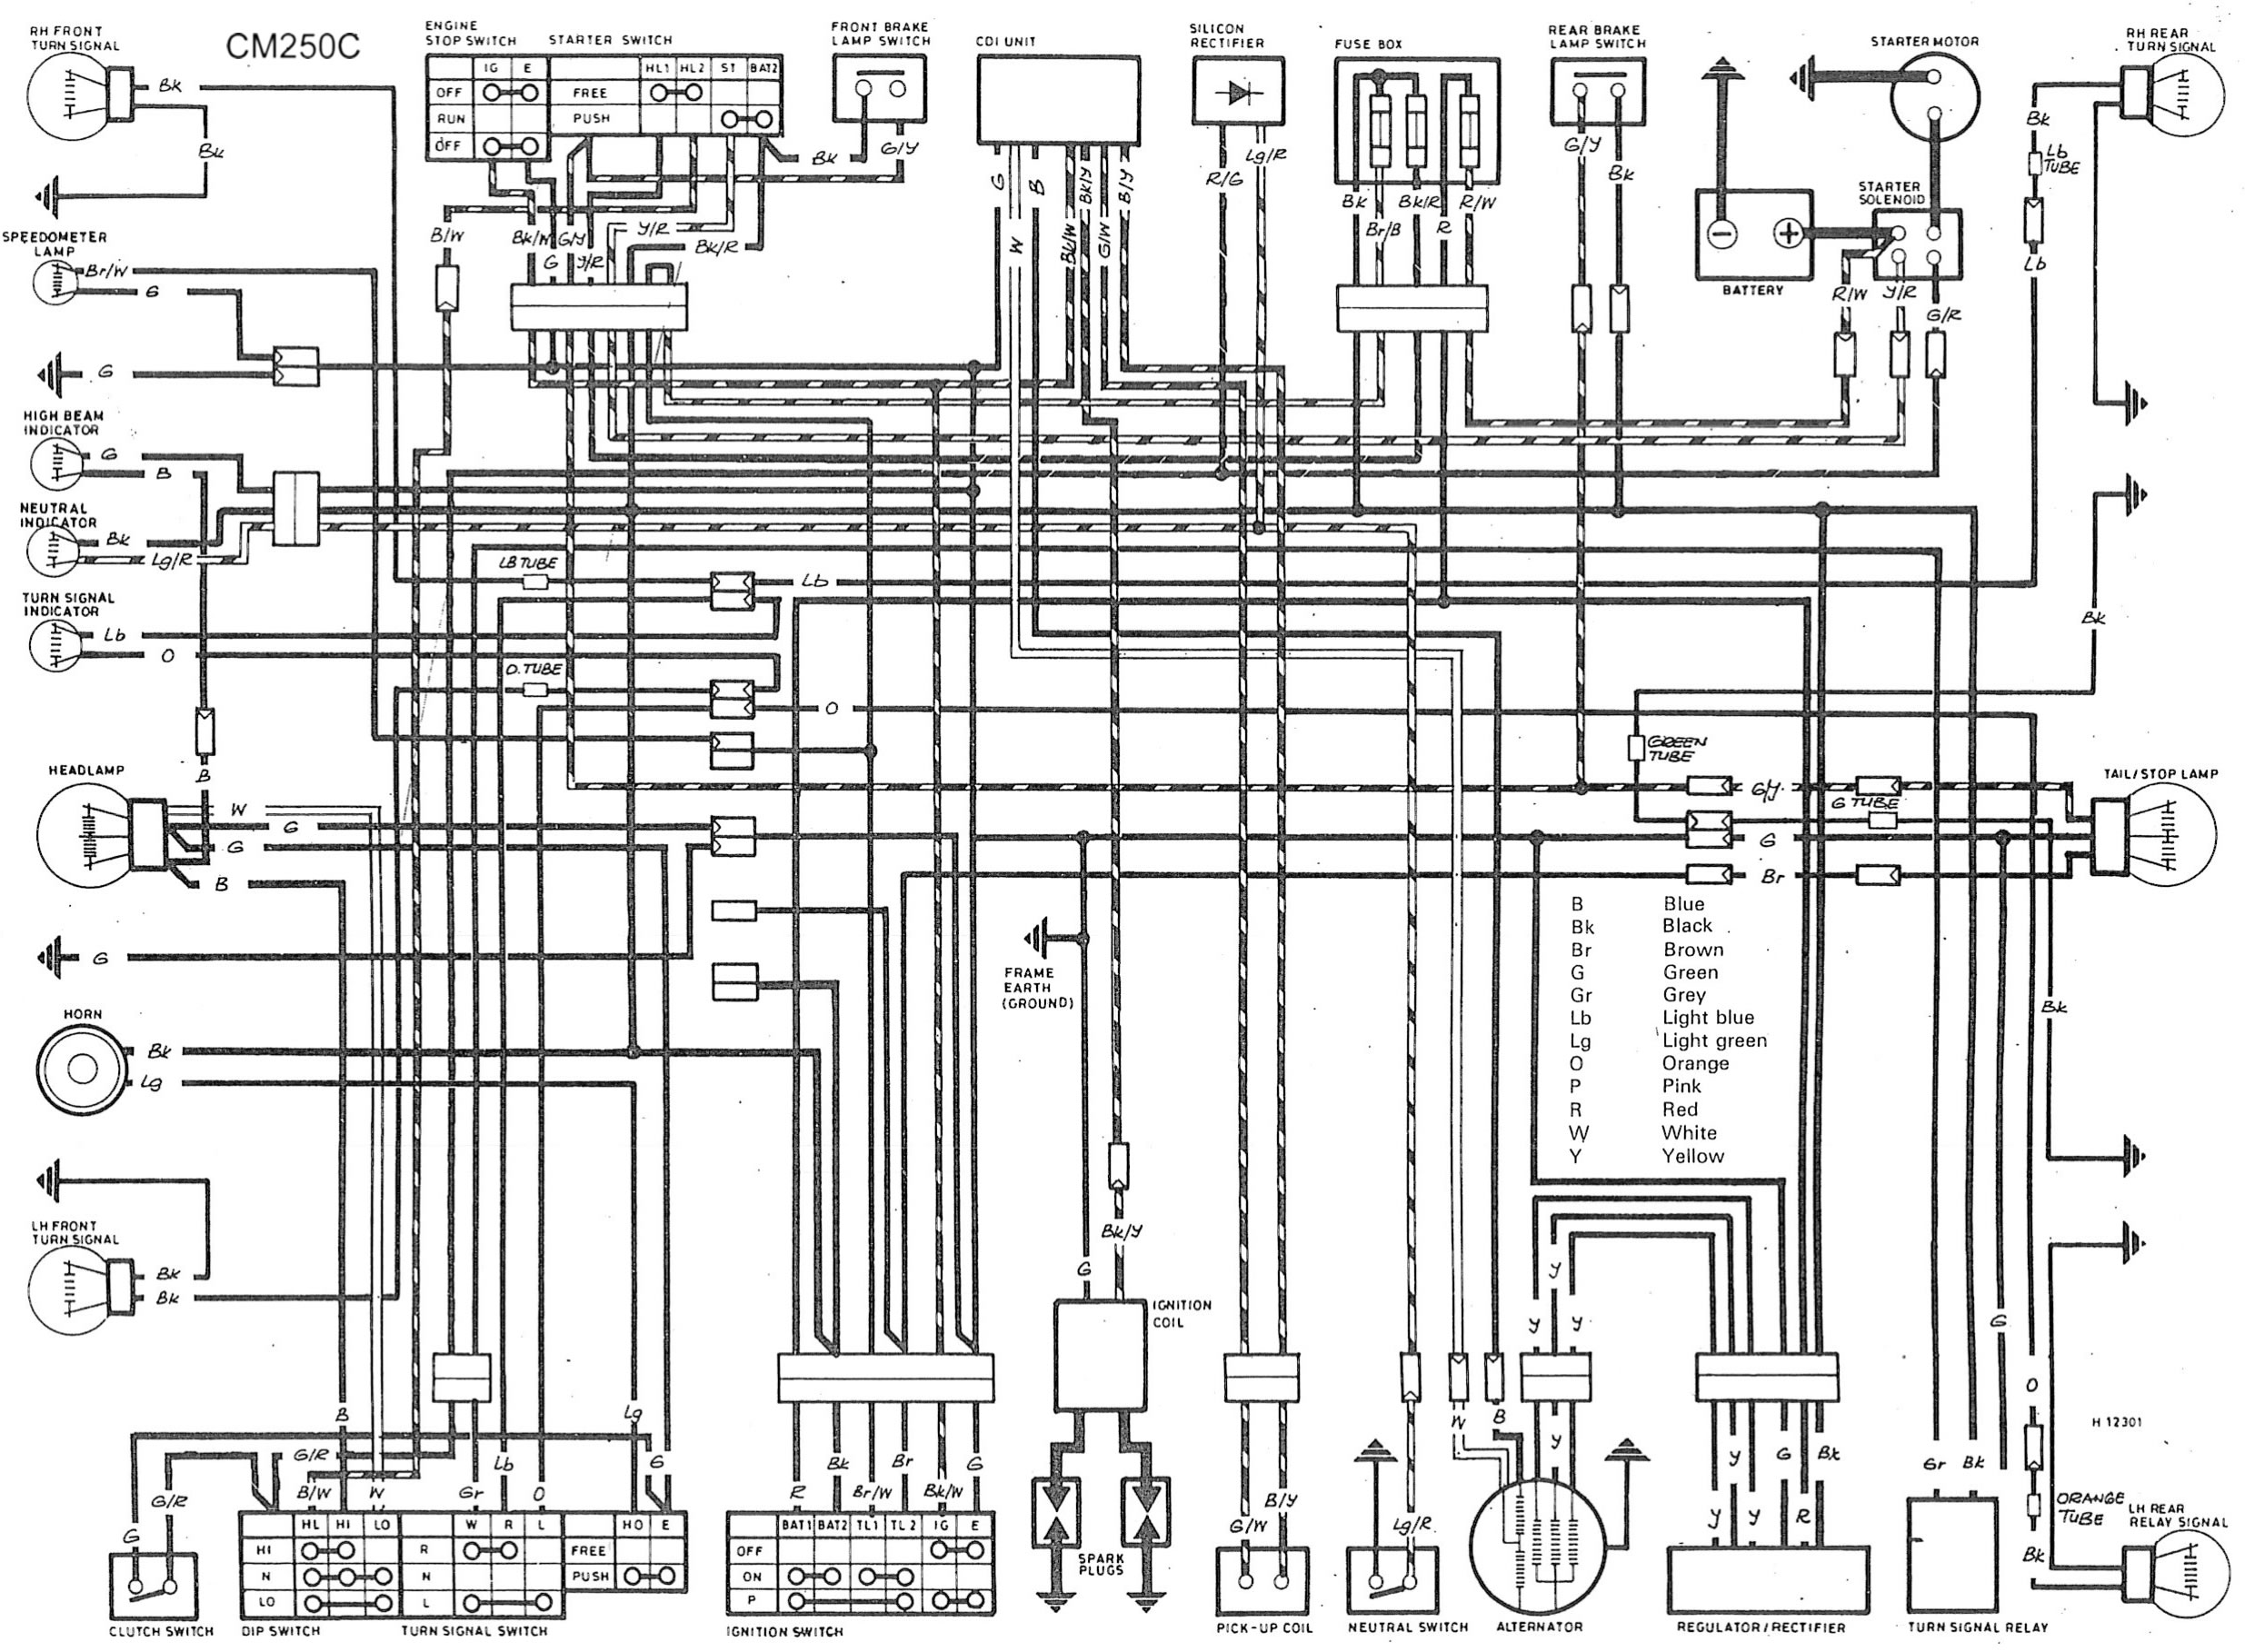 wirediagram cm wiring diagram cm hoist wiring diagram \u2022 wiring diagrams j boston subsat 6 wiring diagram at n-0.co